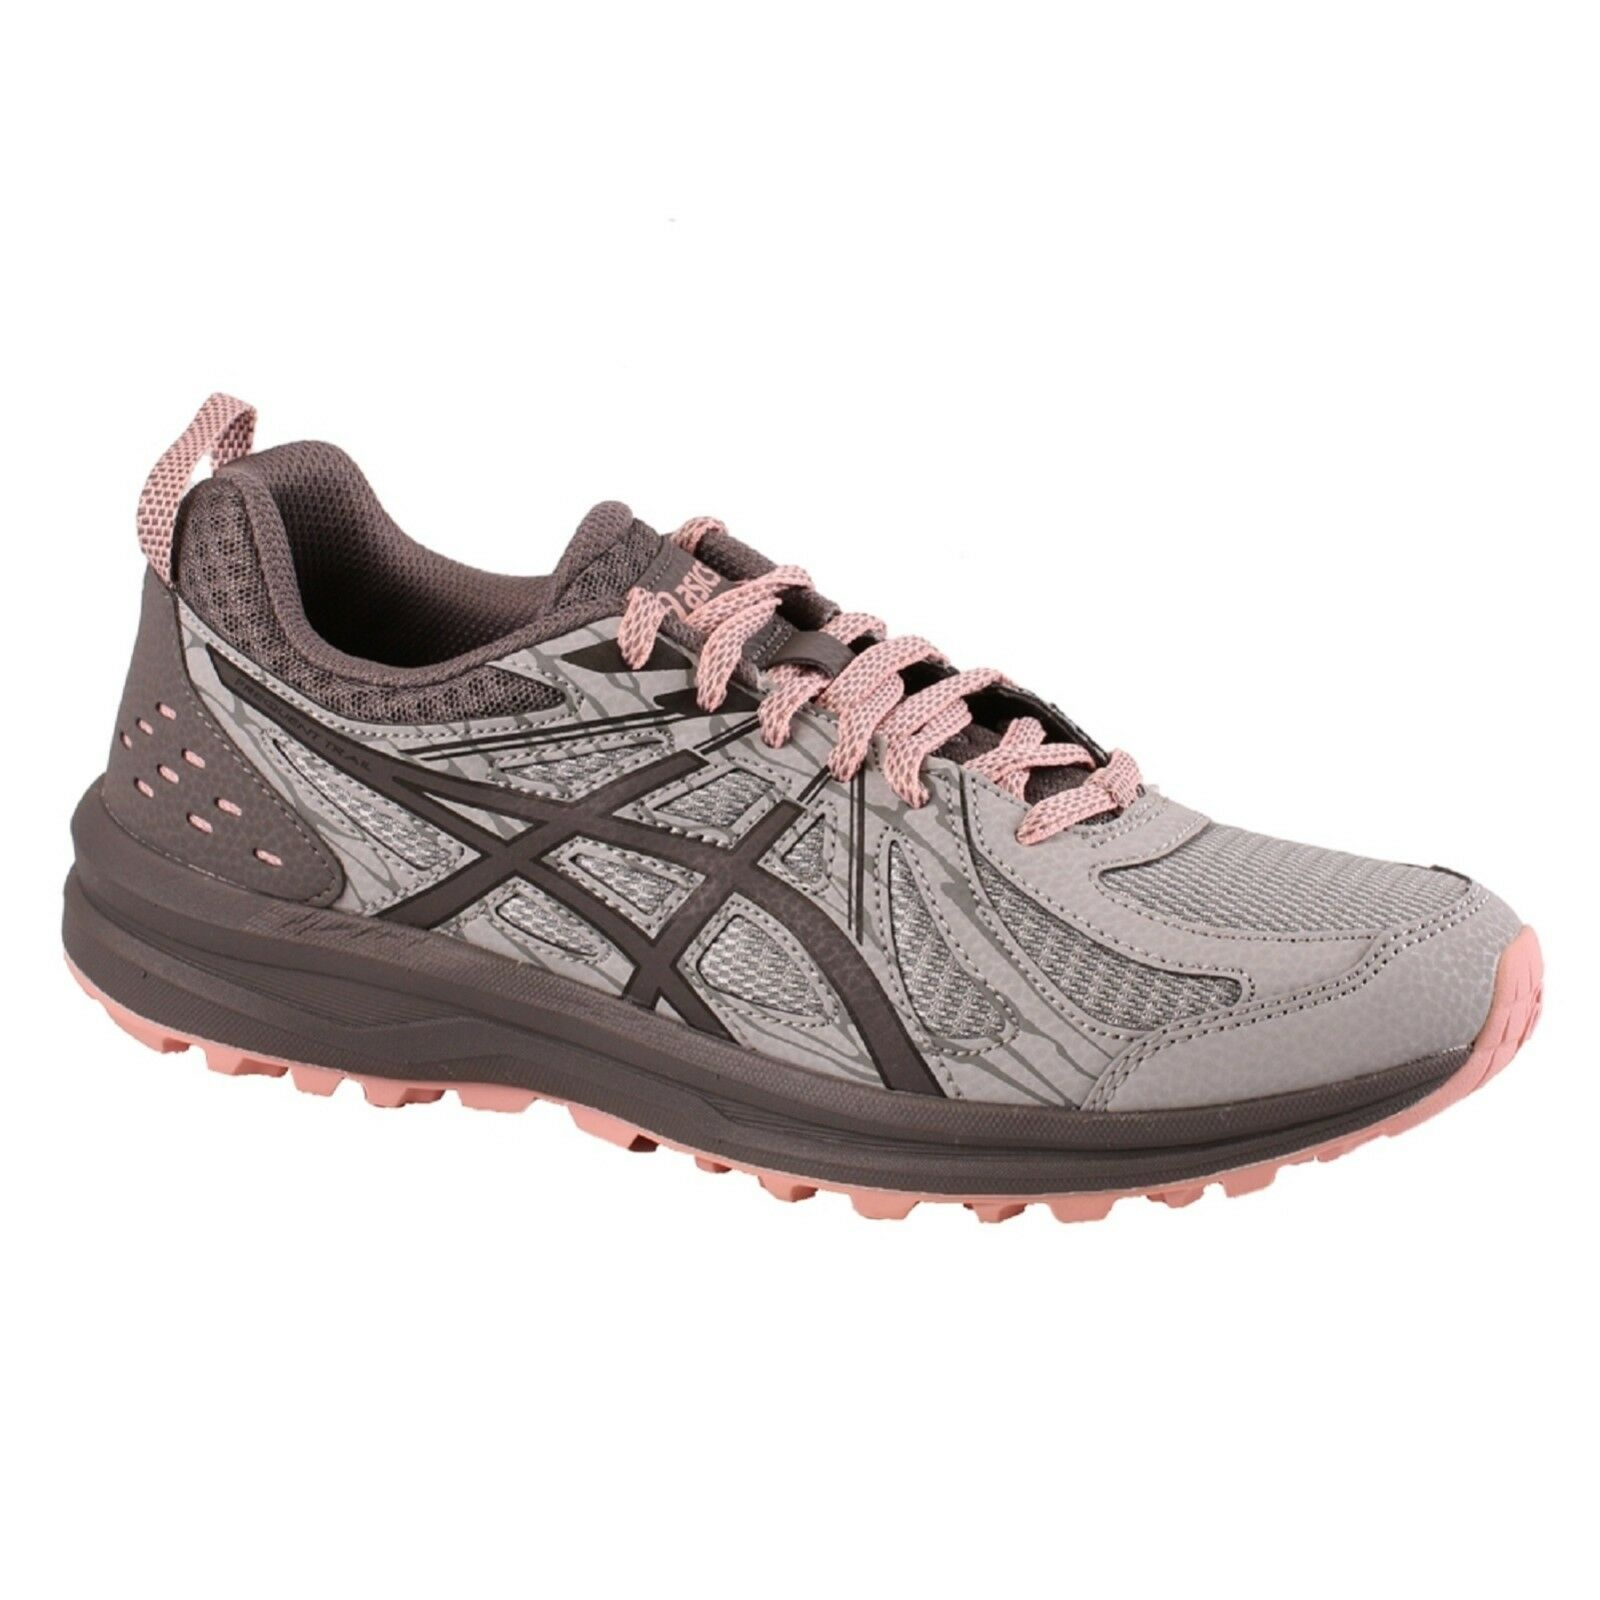 Men's Asics FREQUENT TRAIL (D) 1012A126/020 Grey Carbon Trail Running Shoes